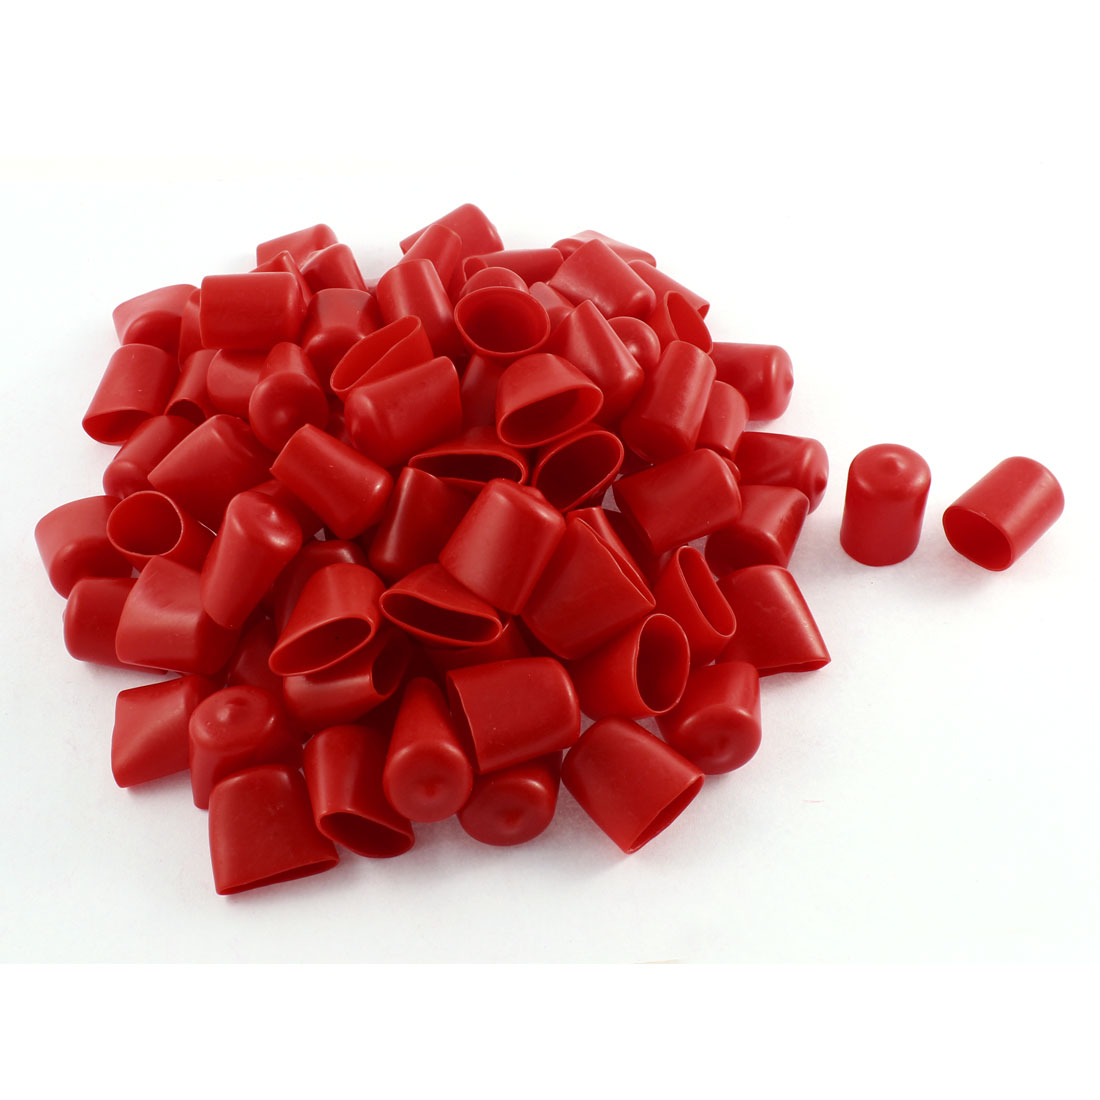 100Pcs Red Soft Plastic PVC Insulated End Sleeves Caps Cover 20mm Dia